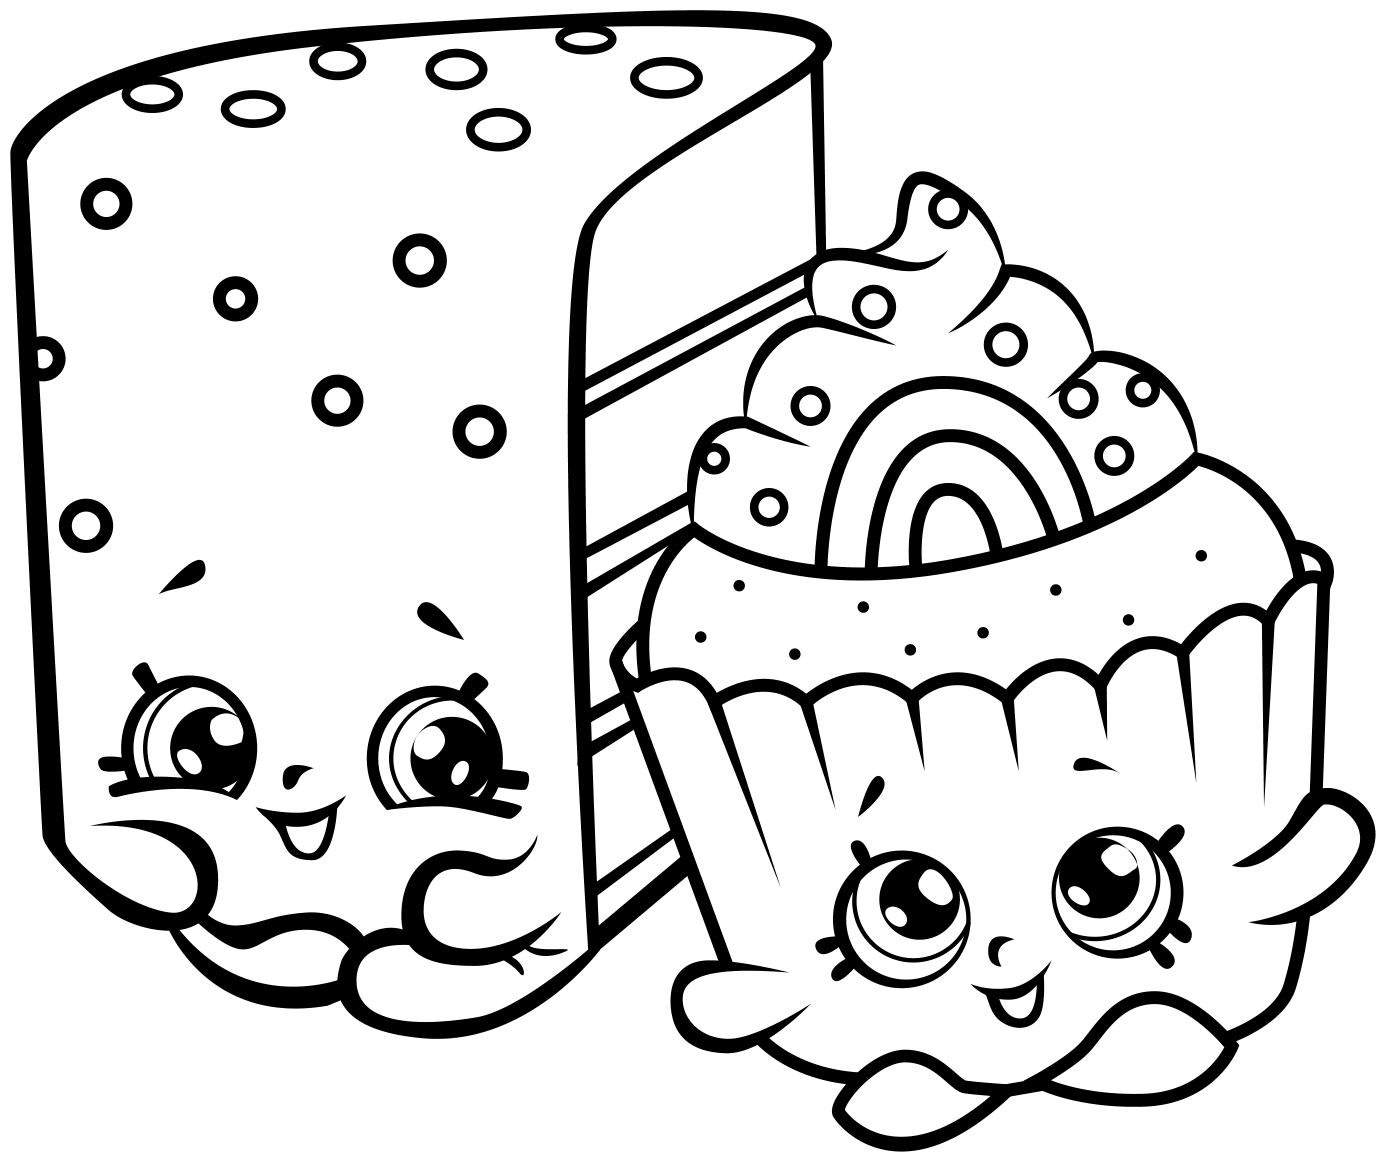 coloring worksheets shopkins shopkins coloring pages best coloring pages for kids coloring shopkins worksheets 1 2